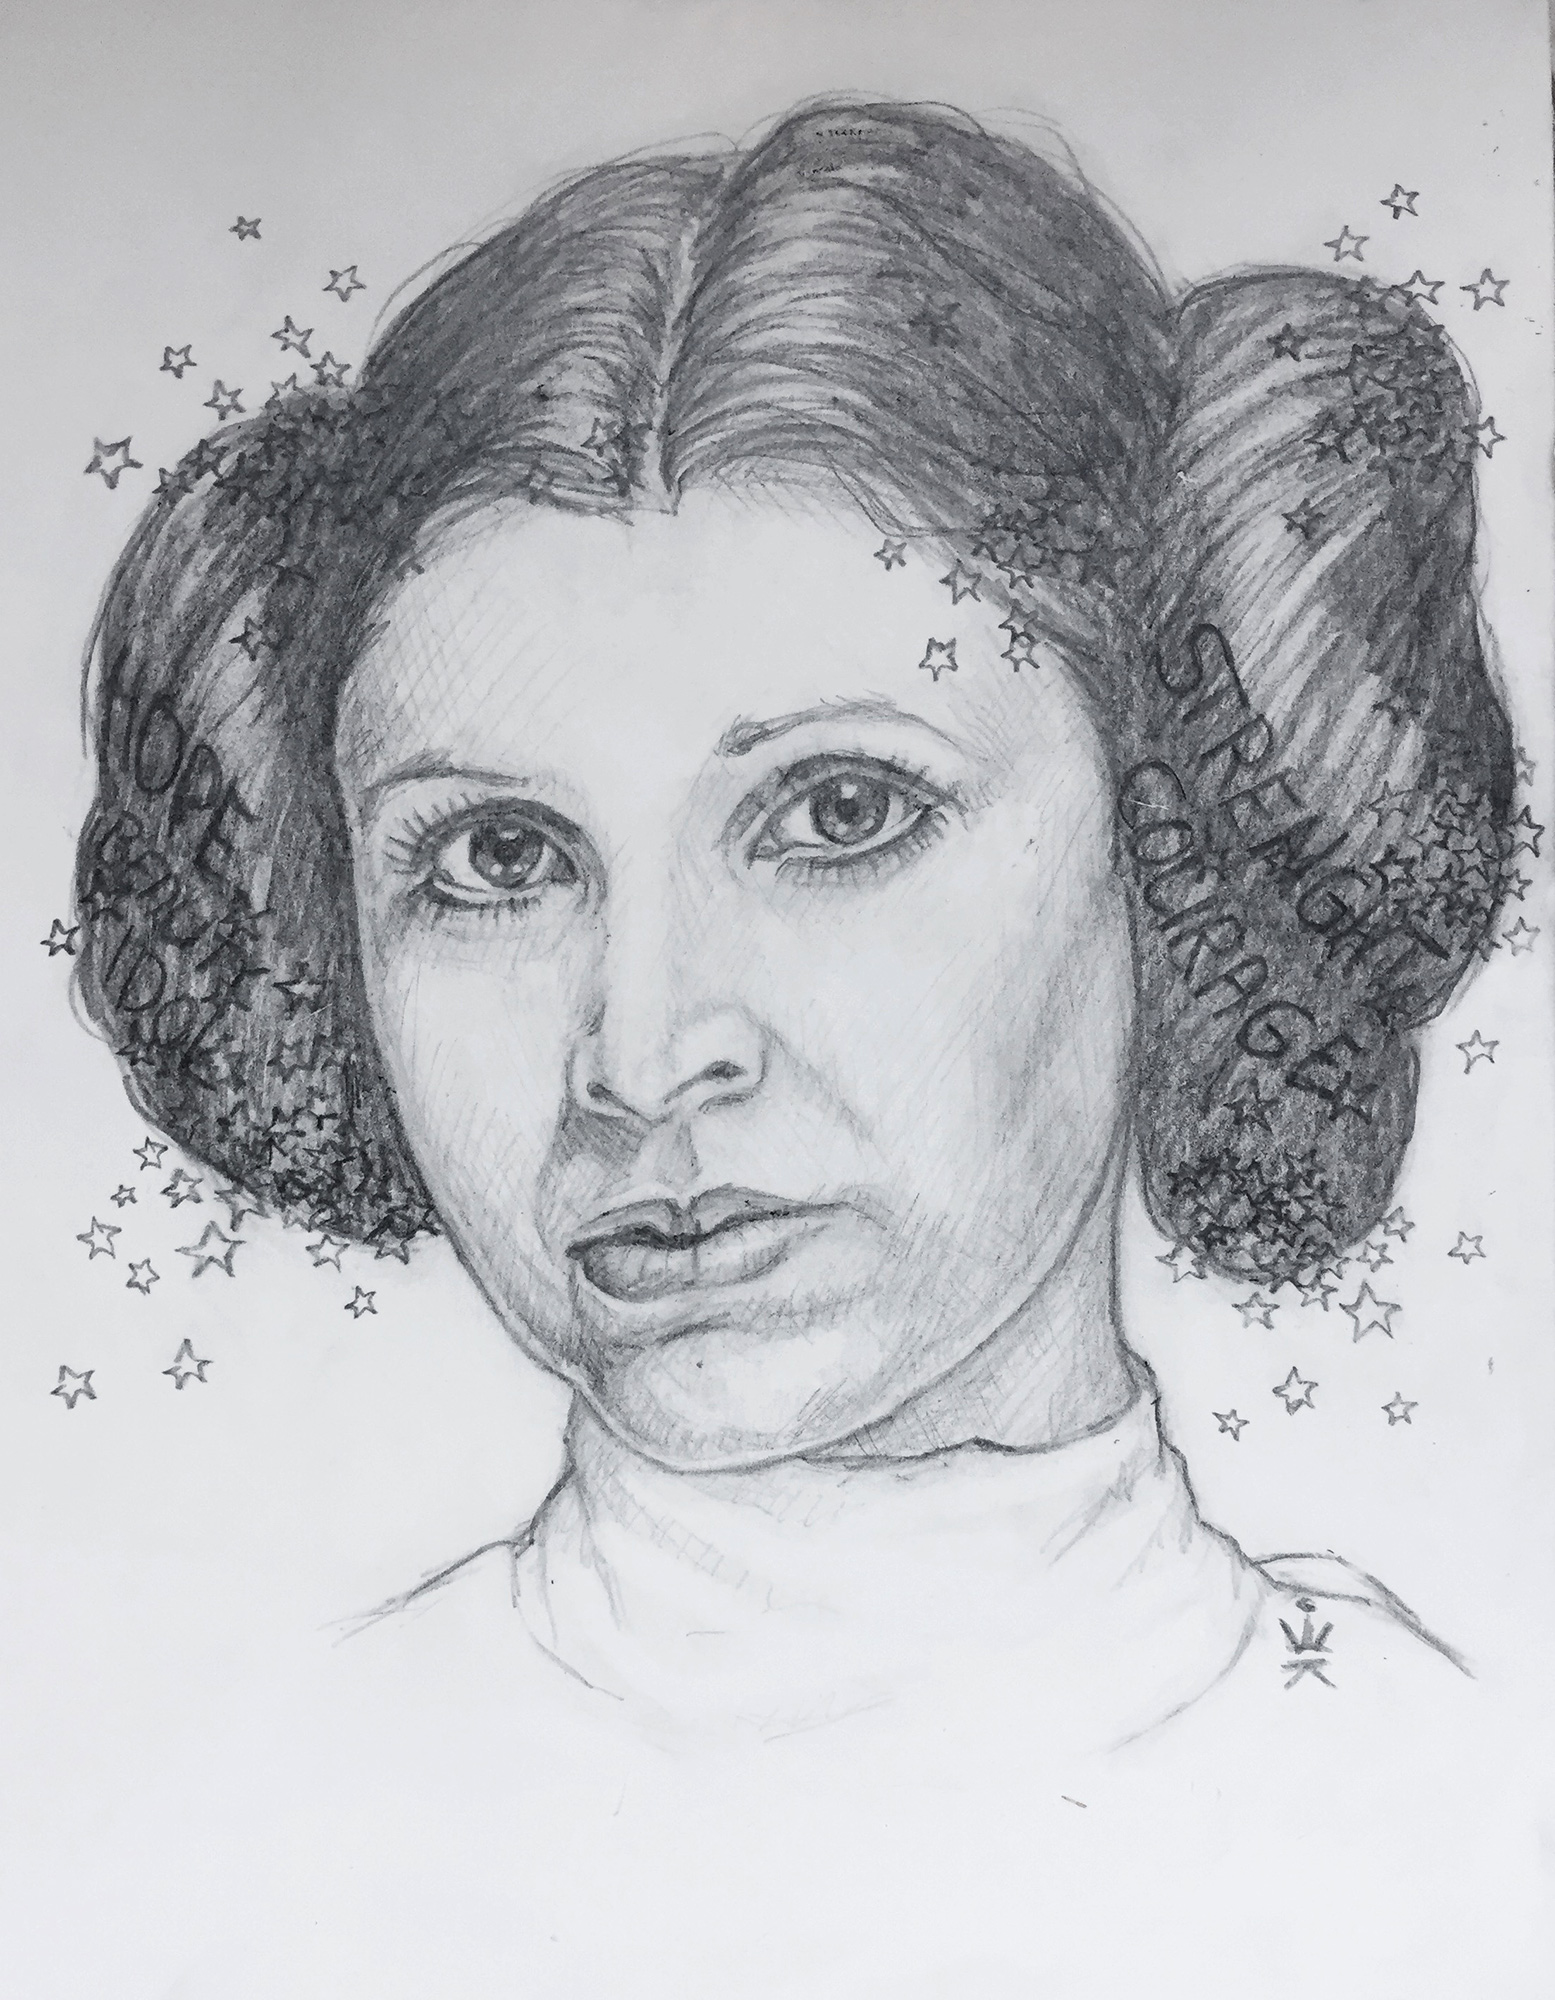 Princess Leia - Tribute to Carrie Fisher (by Esther Wagner)